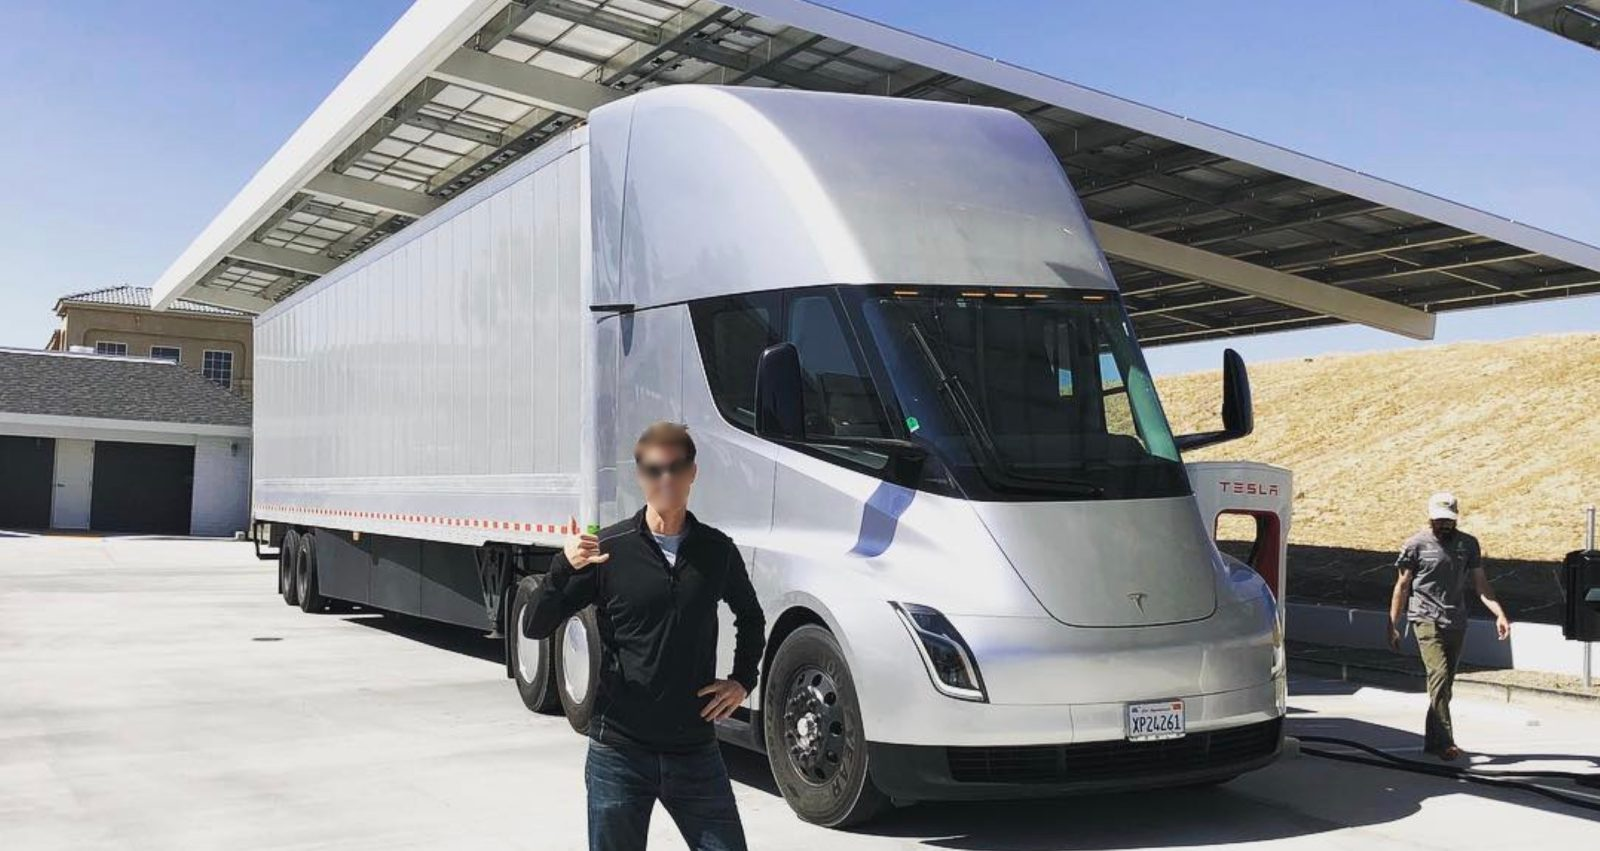 Tesla Semi Electric Truck Prototype Is Back On The Road Spotted At Supercharger Station